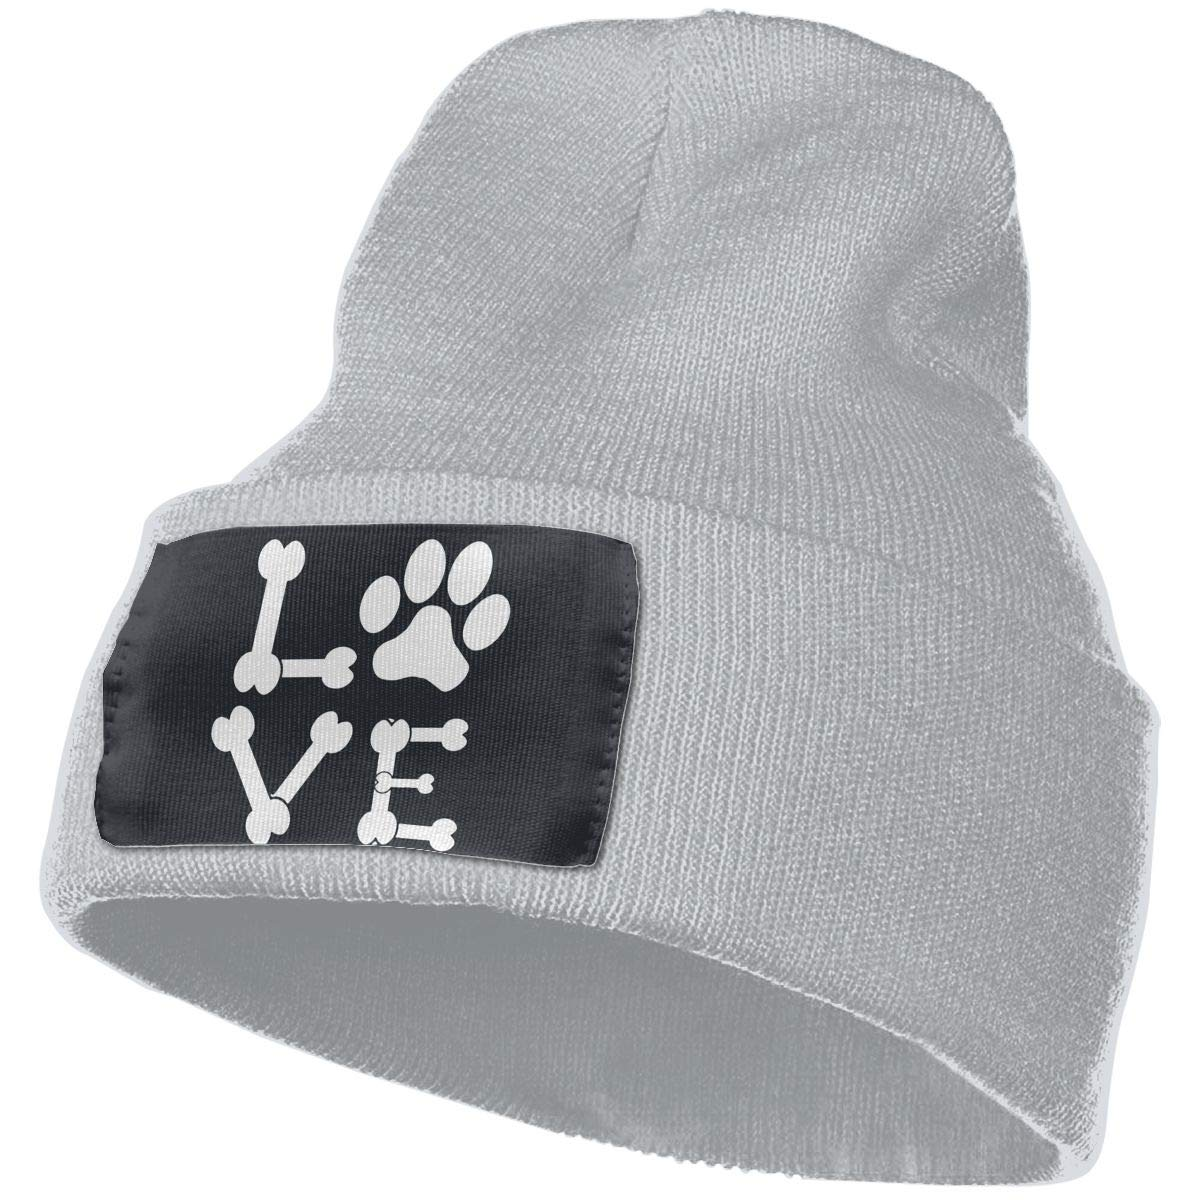 Pawprint Dog Bones Animal Lover Unisex Winter Fashion Snow Ski Hat